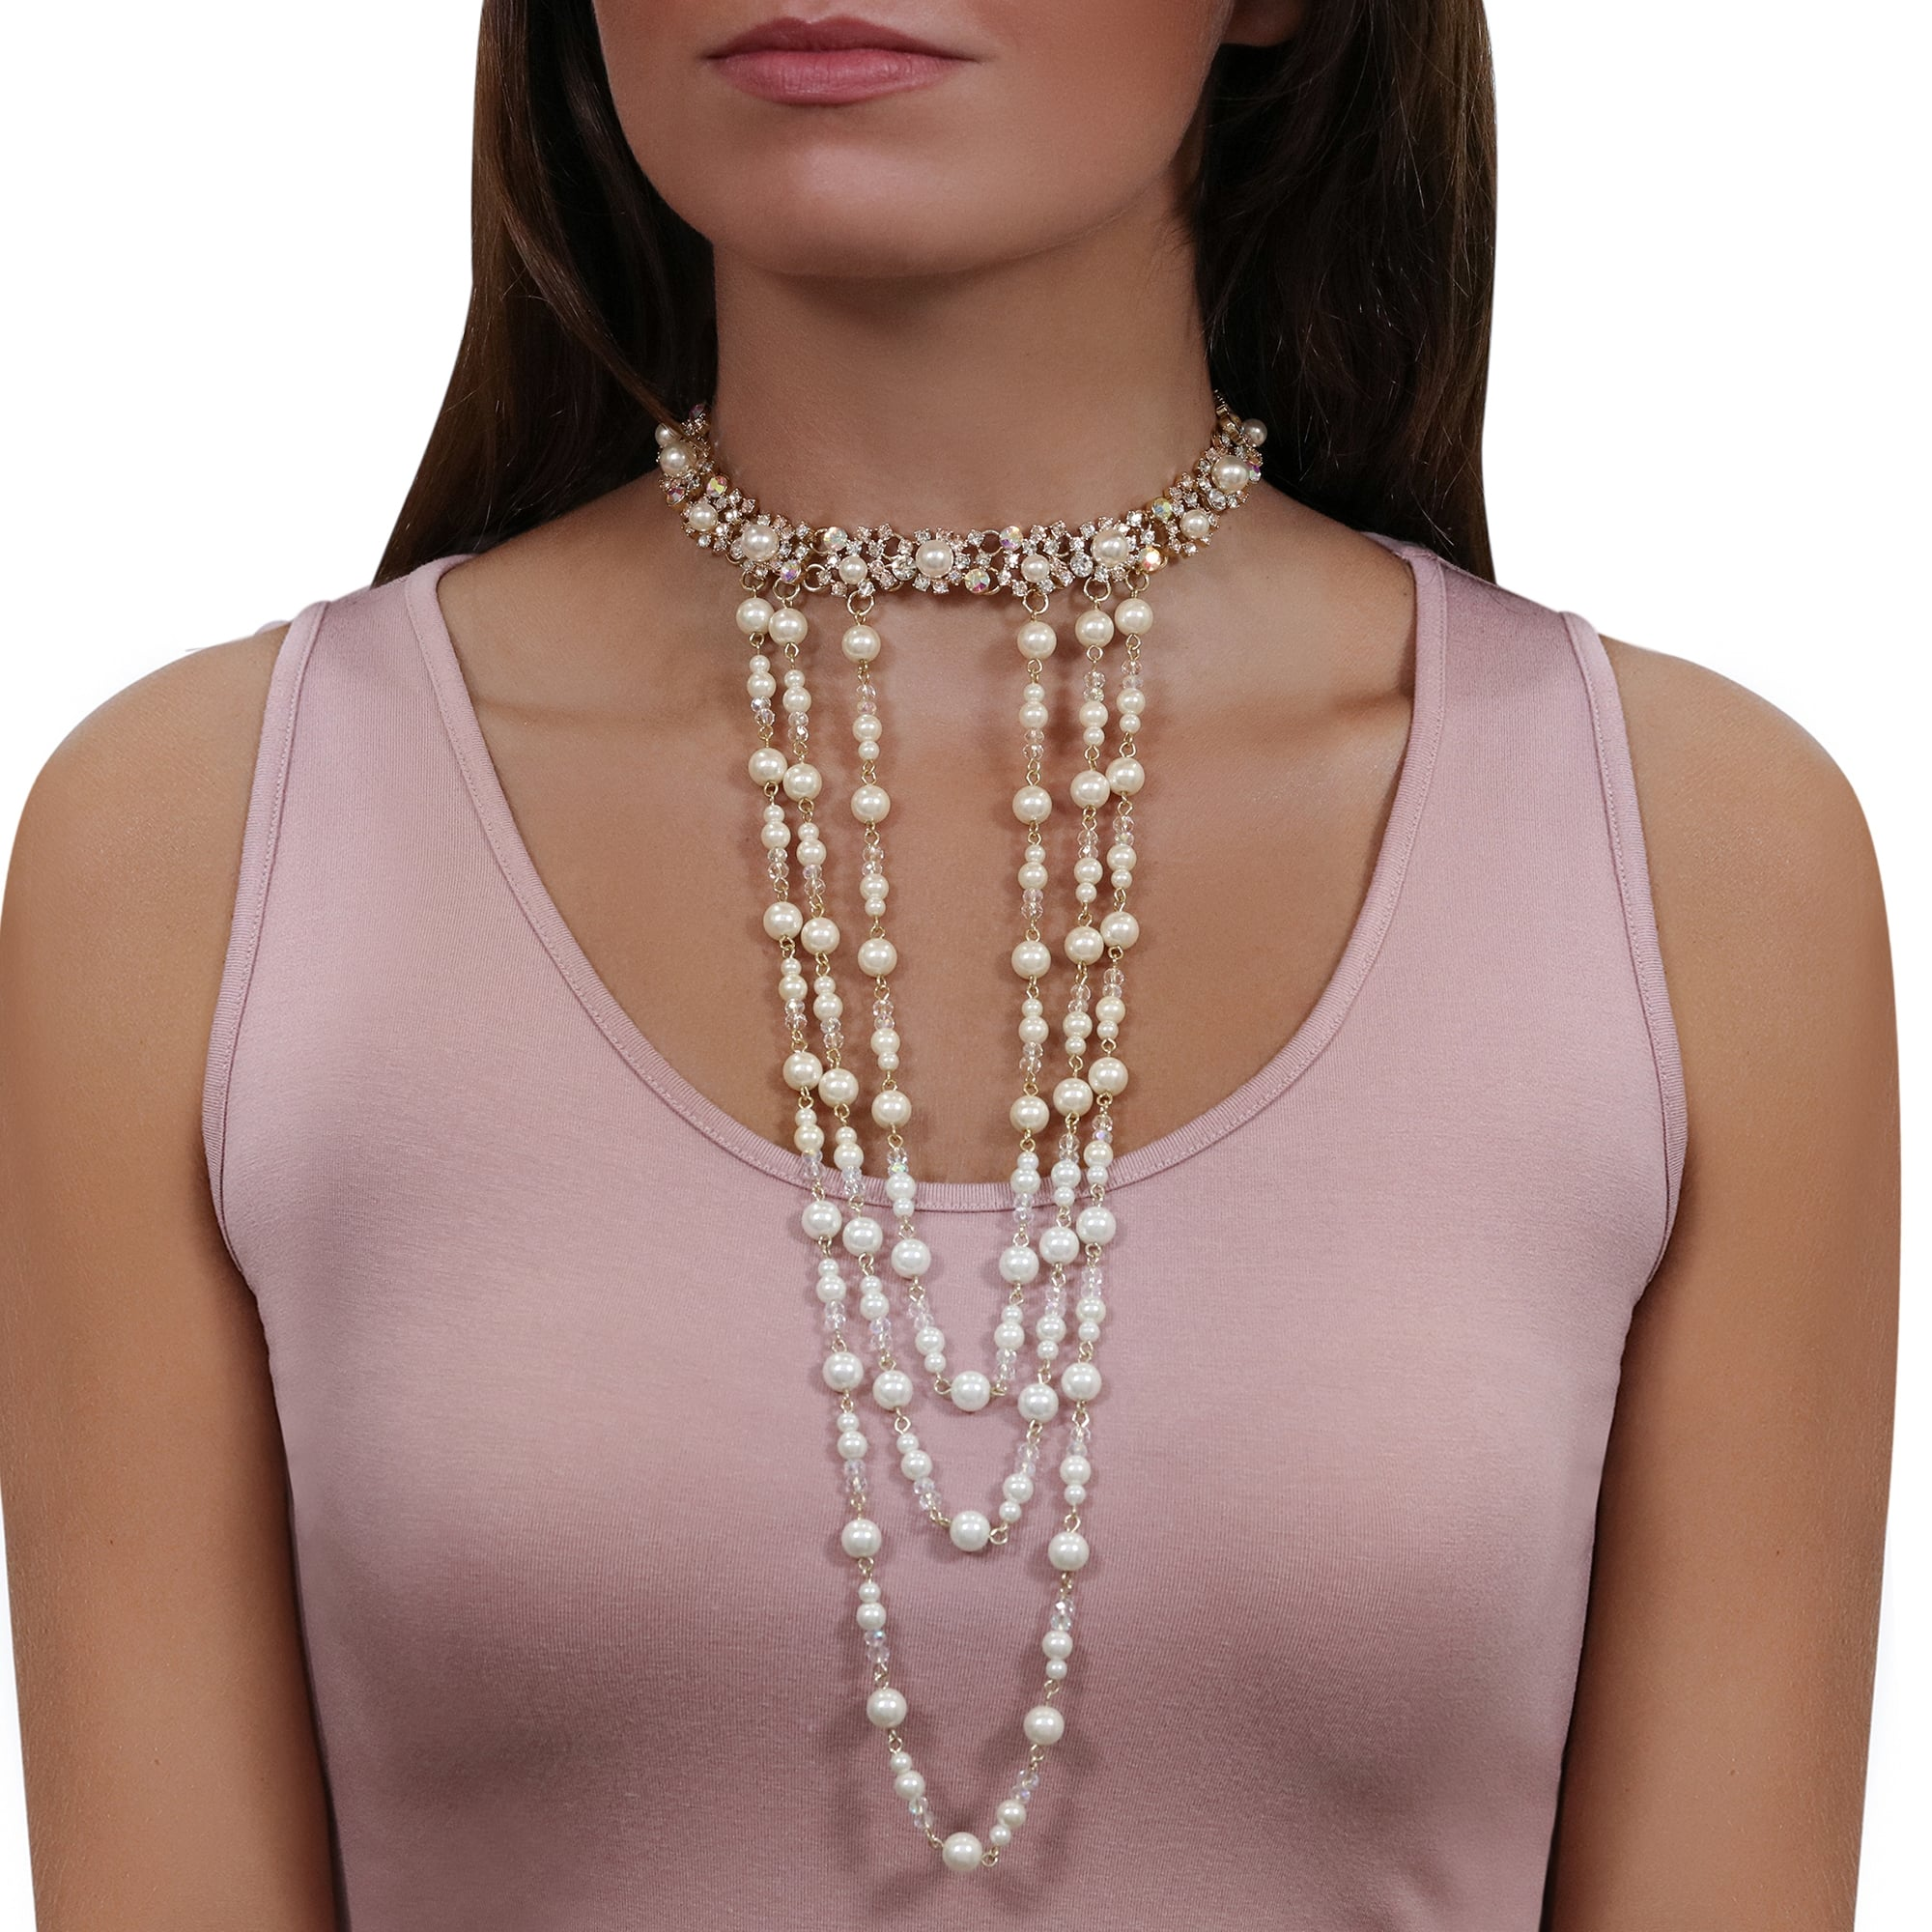 233be146b71 Lipsy Gold Pearl Statement Layered Choker Necklace - Jewellery from ...